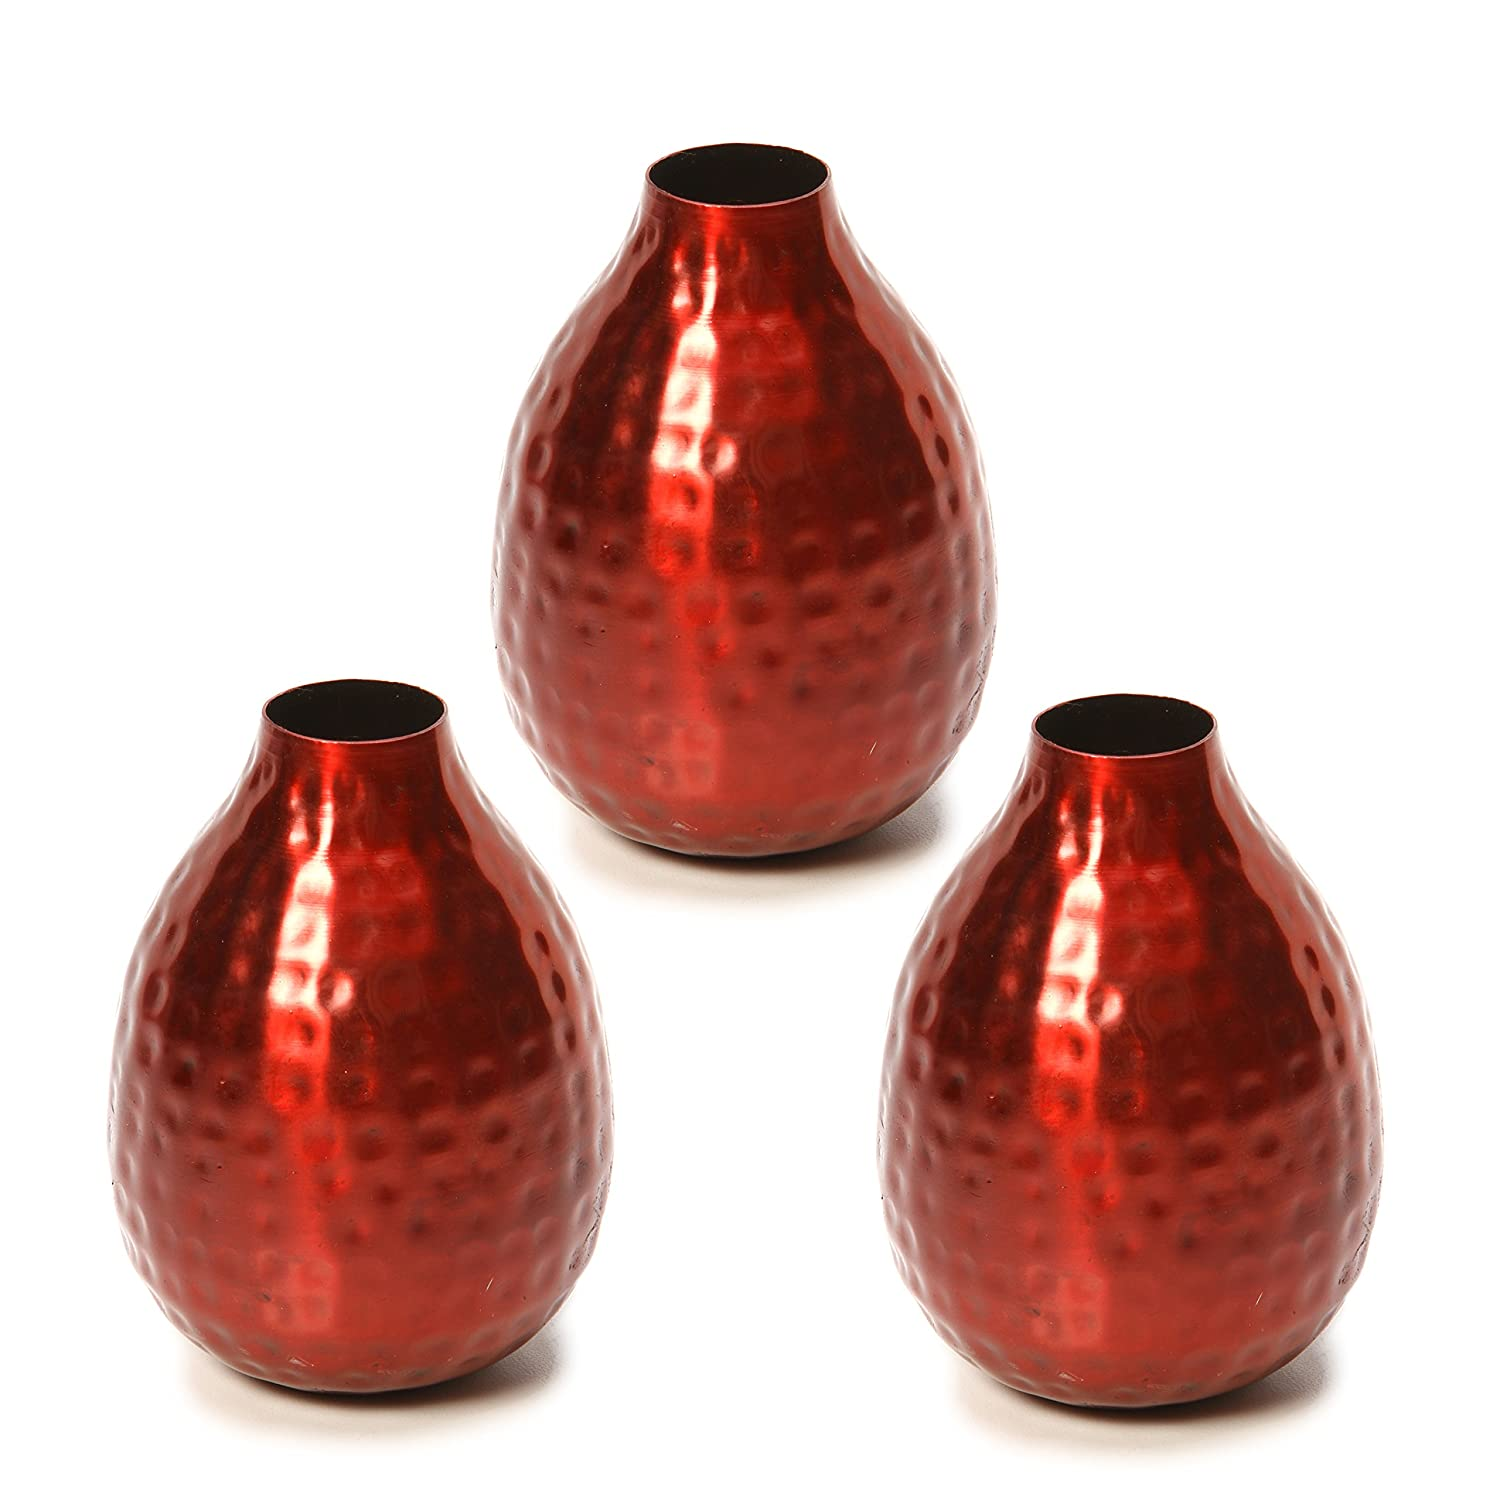 Hosley Set of 3 Metal Bud Vases - Your Choice of Colors. 4.5 Inch High. Ideal Accent Piece for Coffee and Side Tables as Well as Dried Floral Arrangements (2-Red Finish)